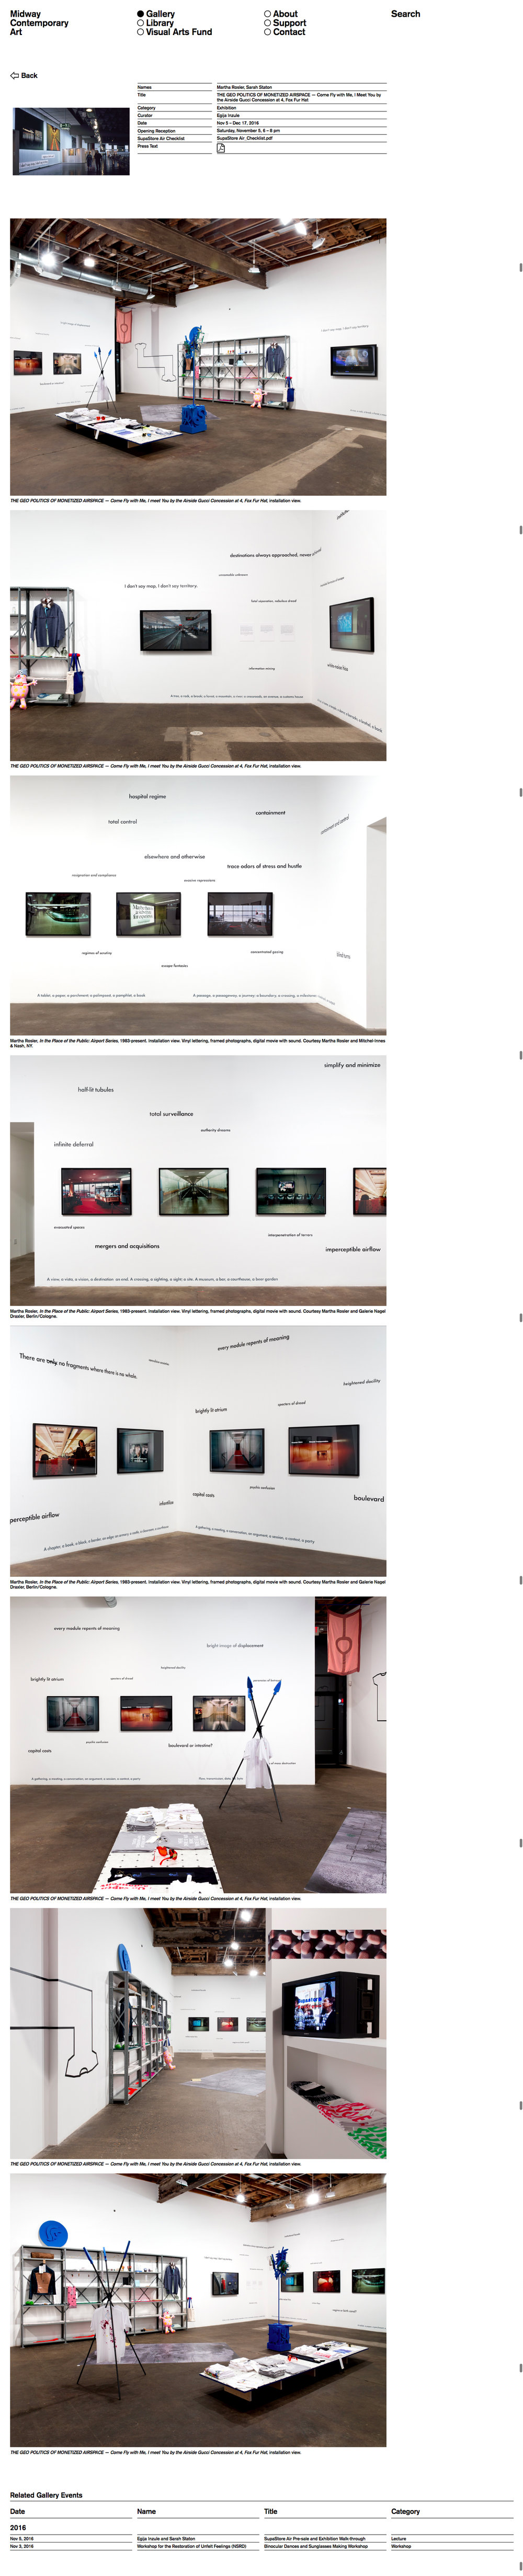 Gallery Midway Contemporary Art 2.jpg